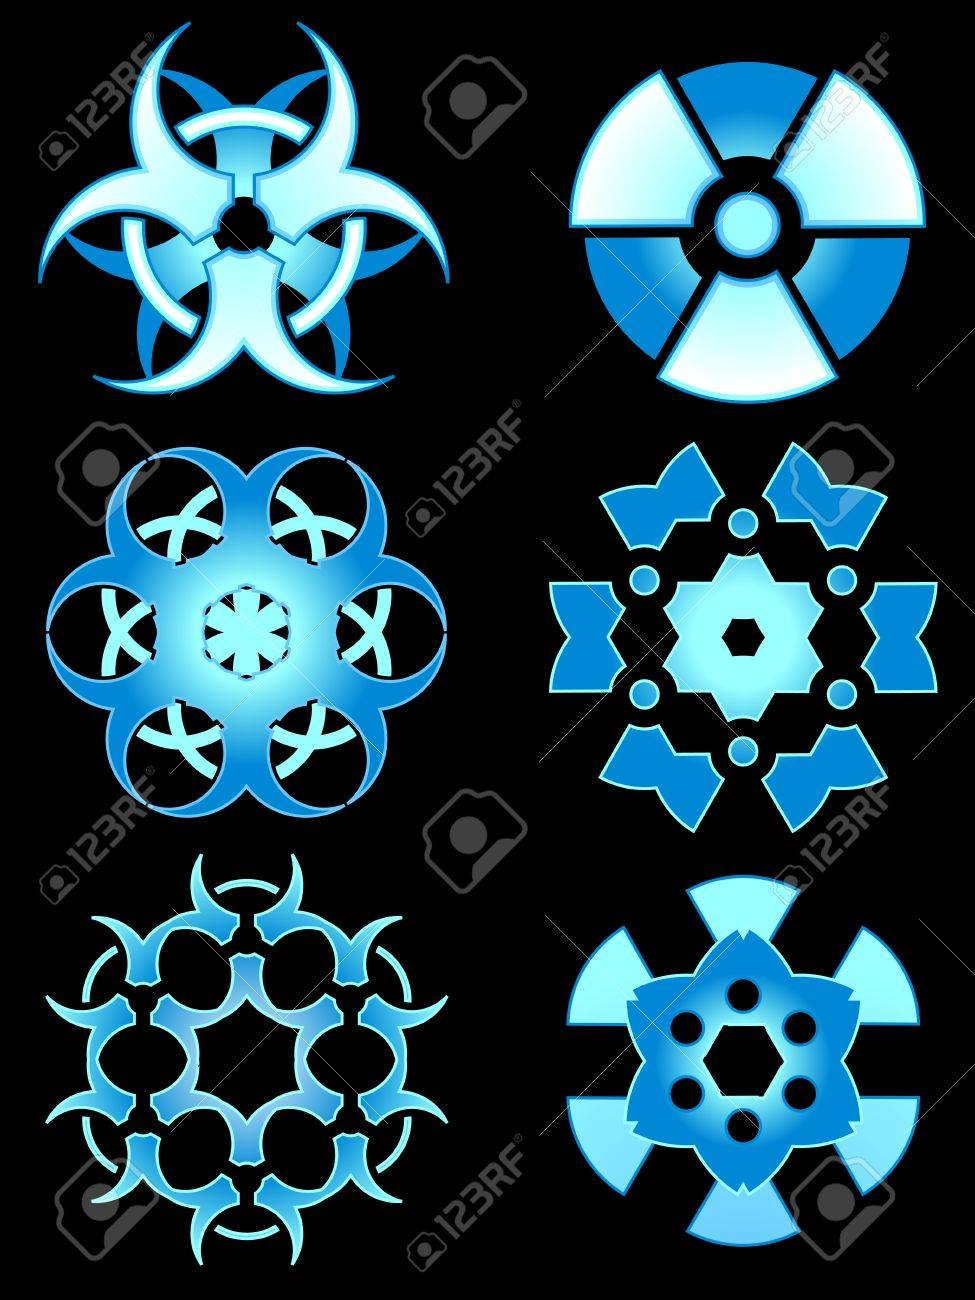 Hazardous snow designs Stock Vector - 8380341